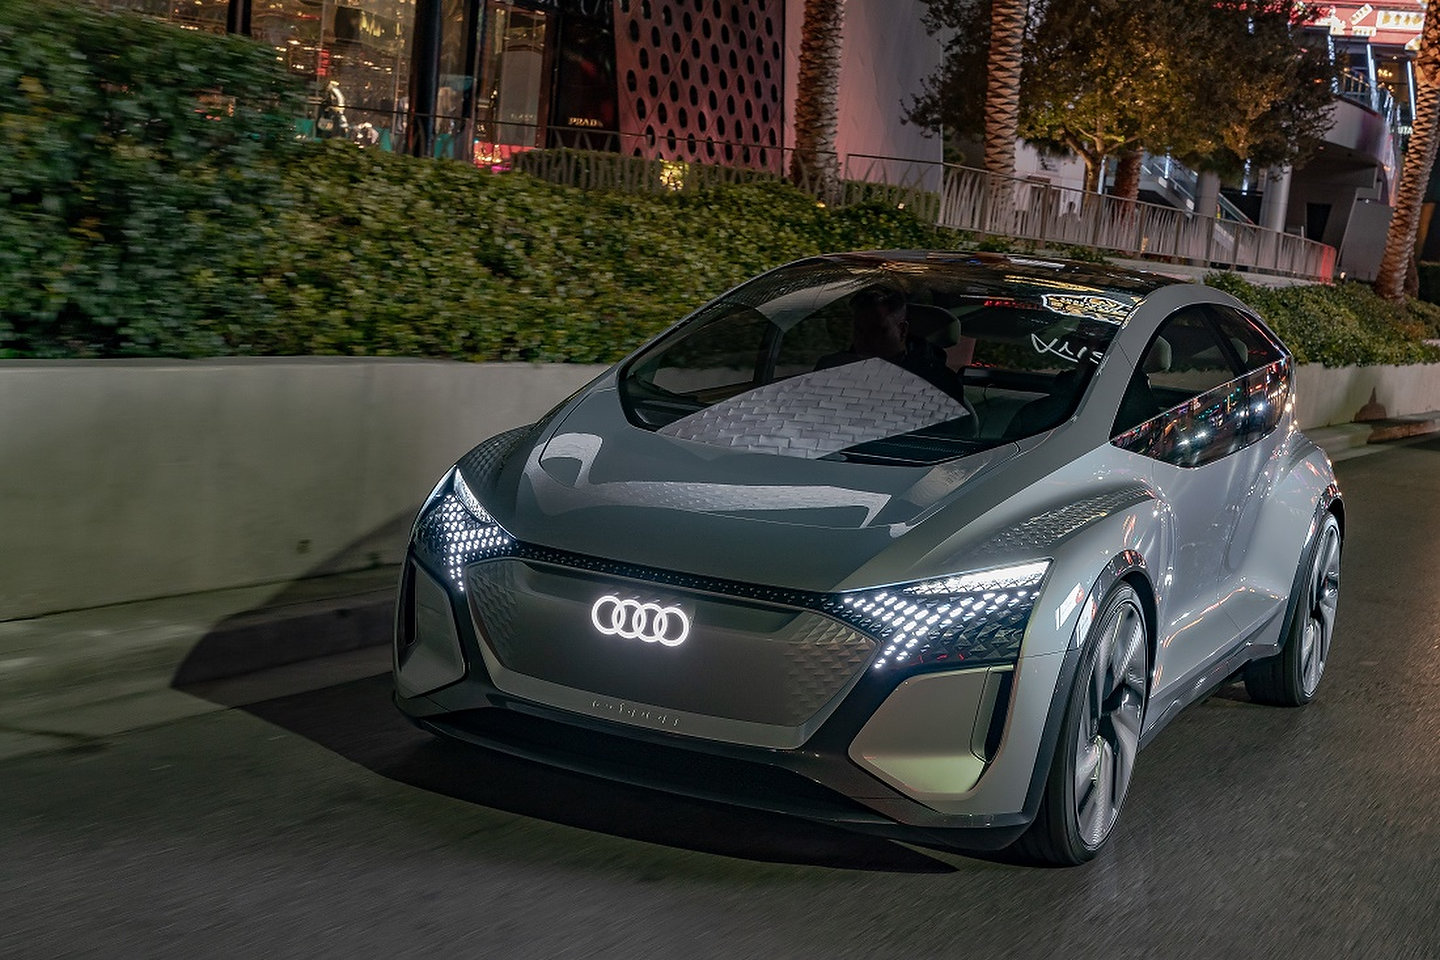 The Audi AI:ME at CES 2020